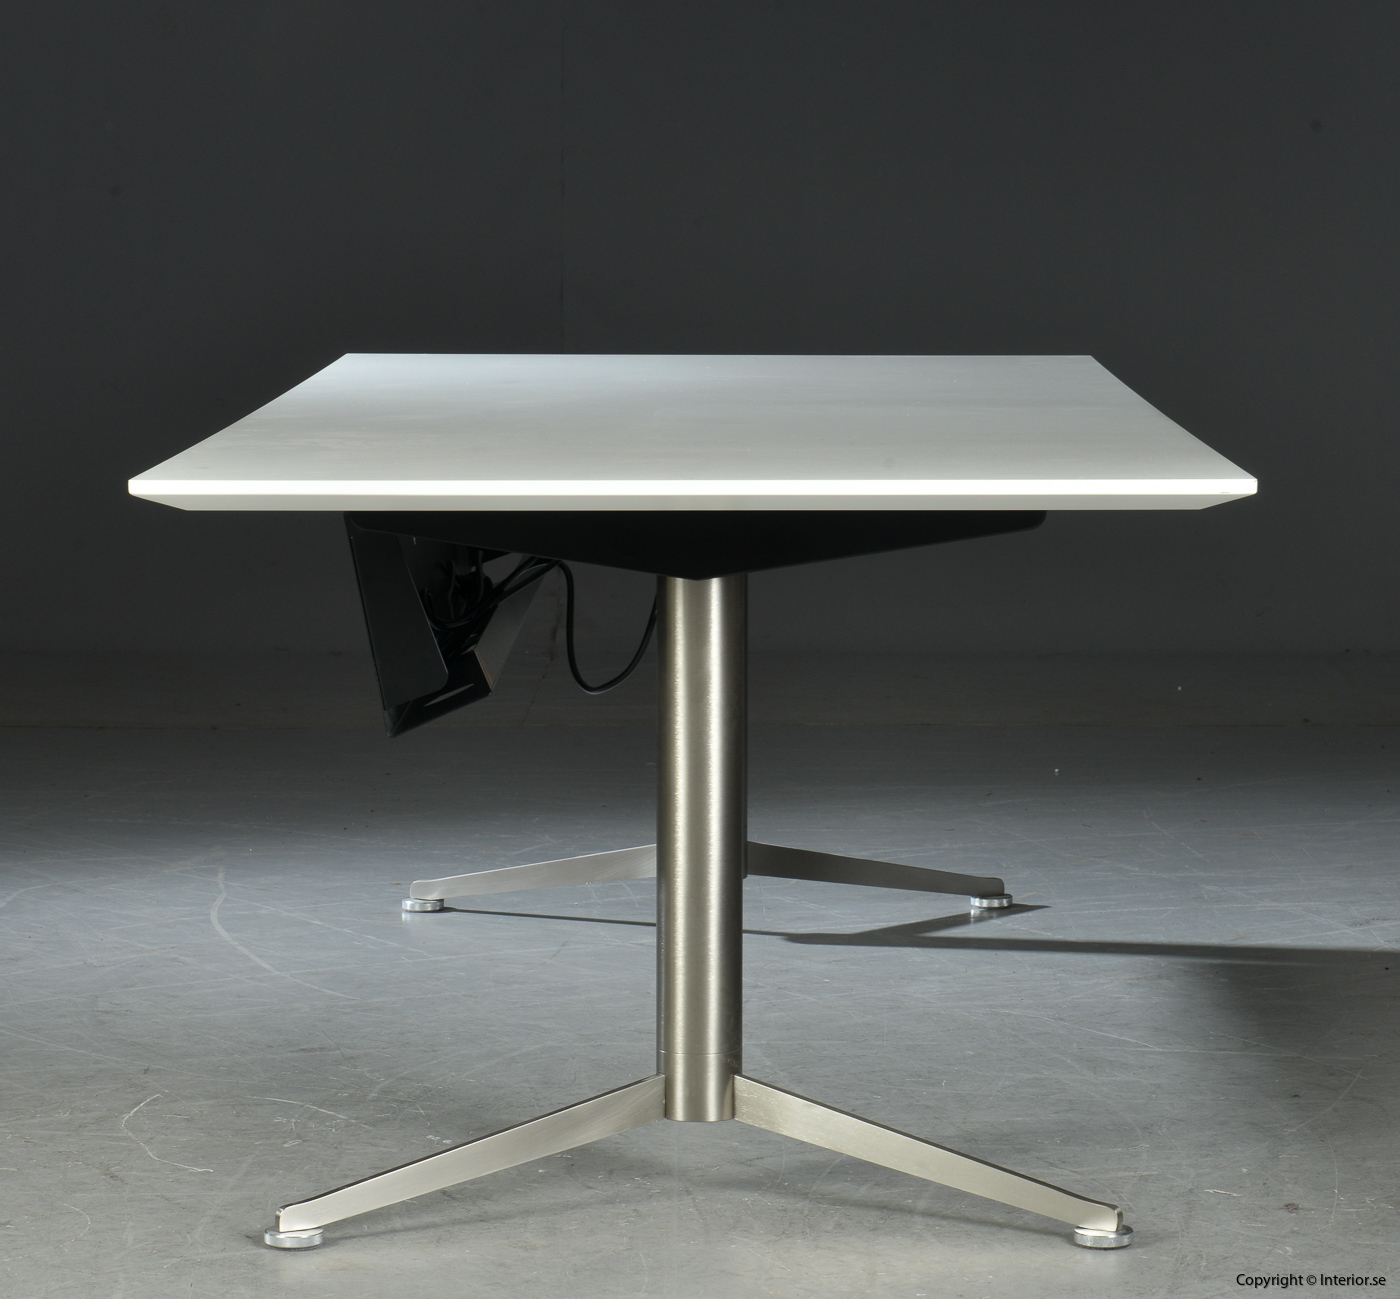 Höj- & sänkbart konferensbord, Paustian Spinal Table SP37 - Paul Leroy 4